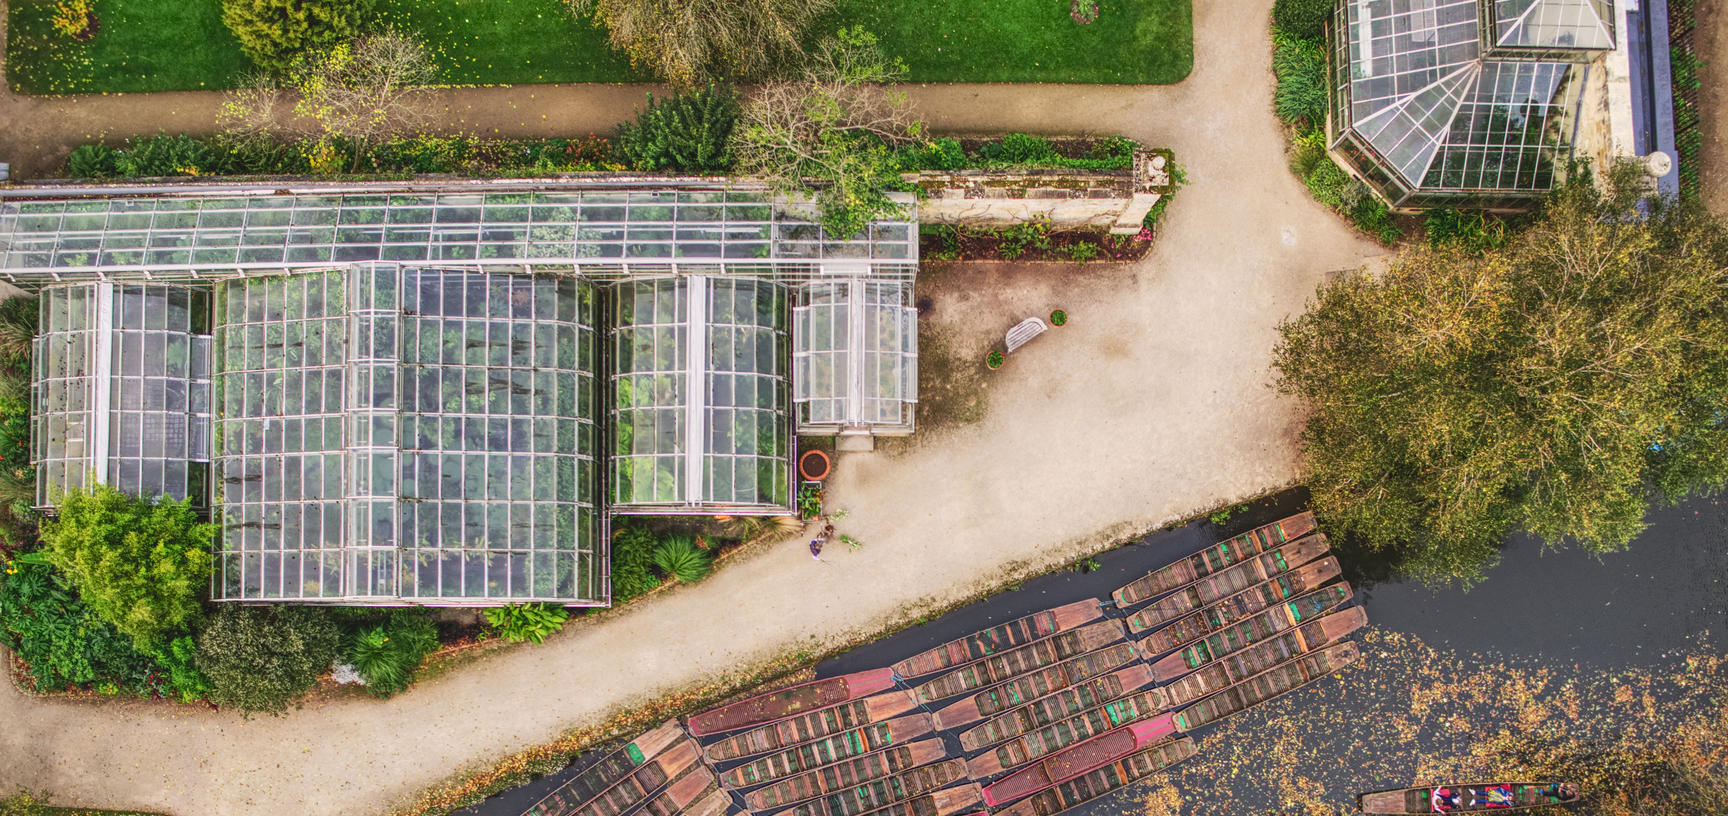 botanic garden  glasshouses  drone  punts  autumn